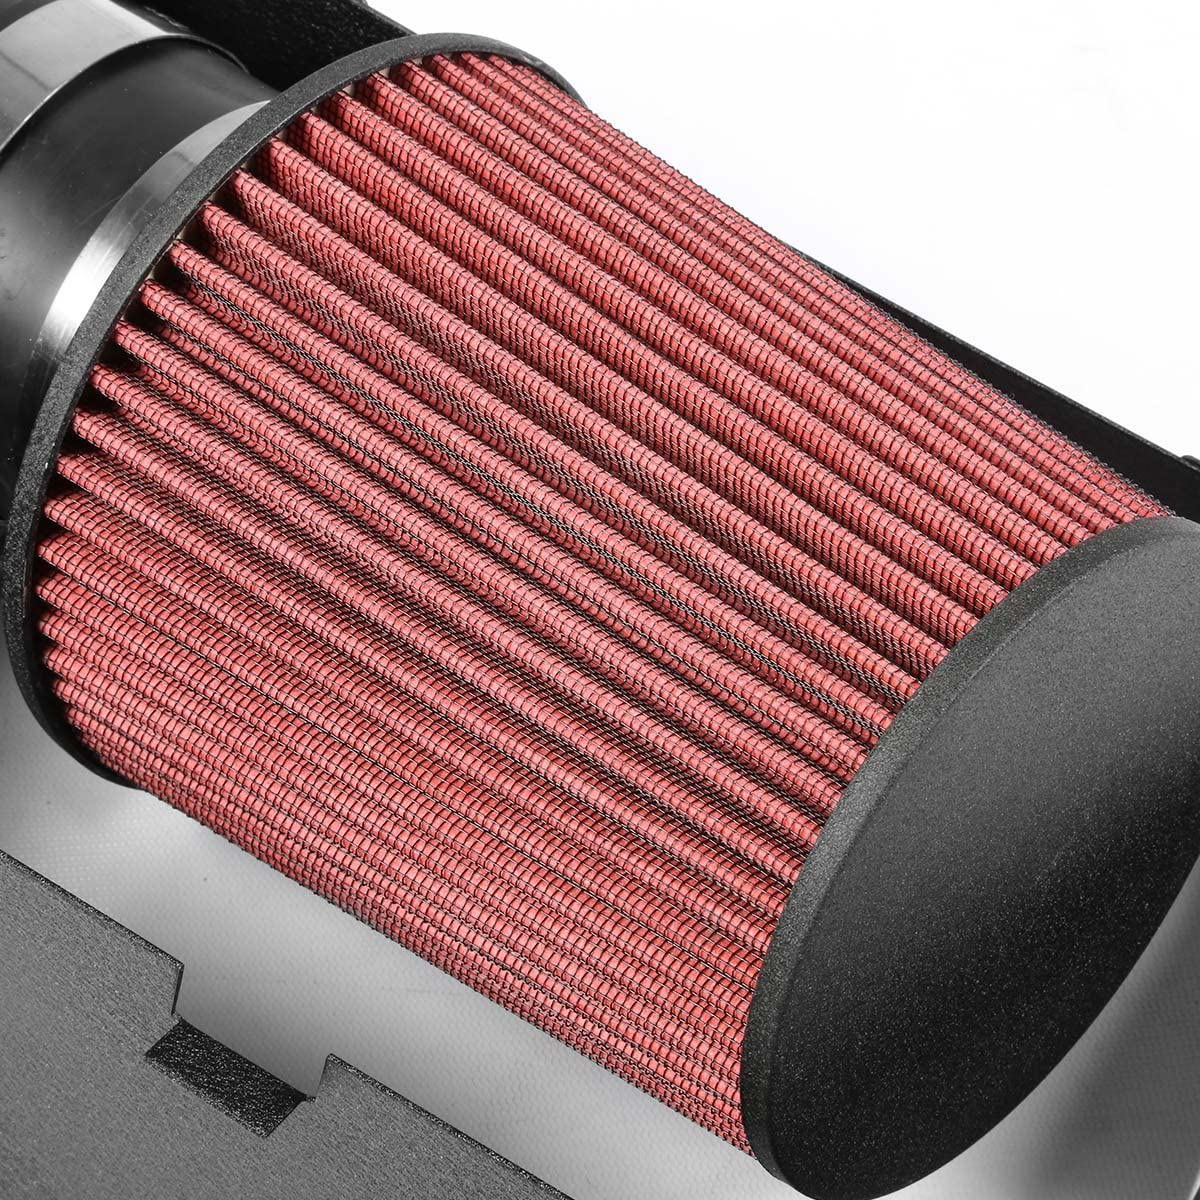 DNAMotoring AIP-2-HS-DMAG05V8-BKBK Cold Air Intake System and Heat Shield